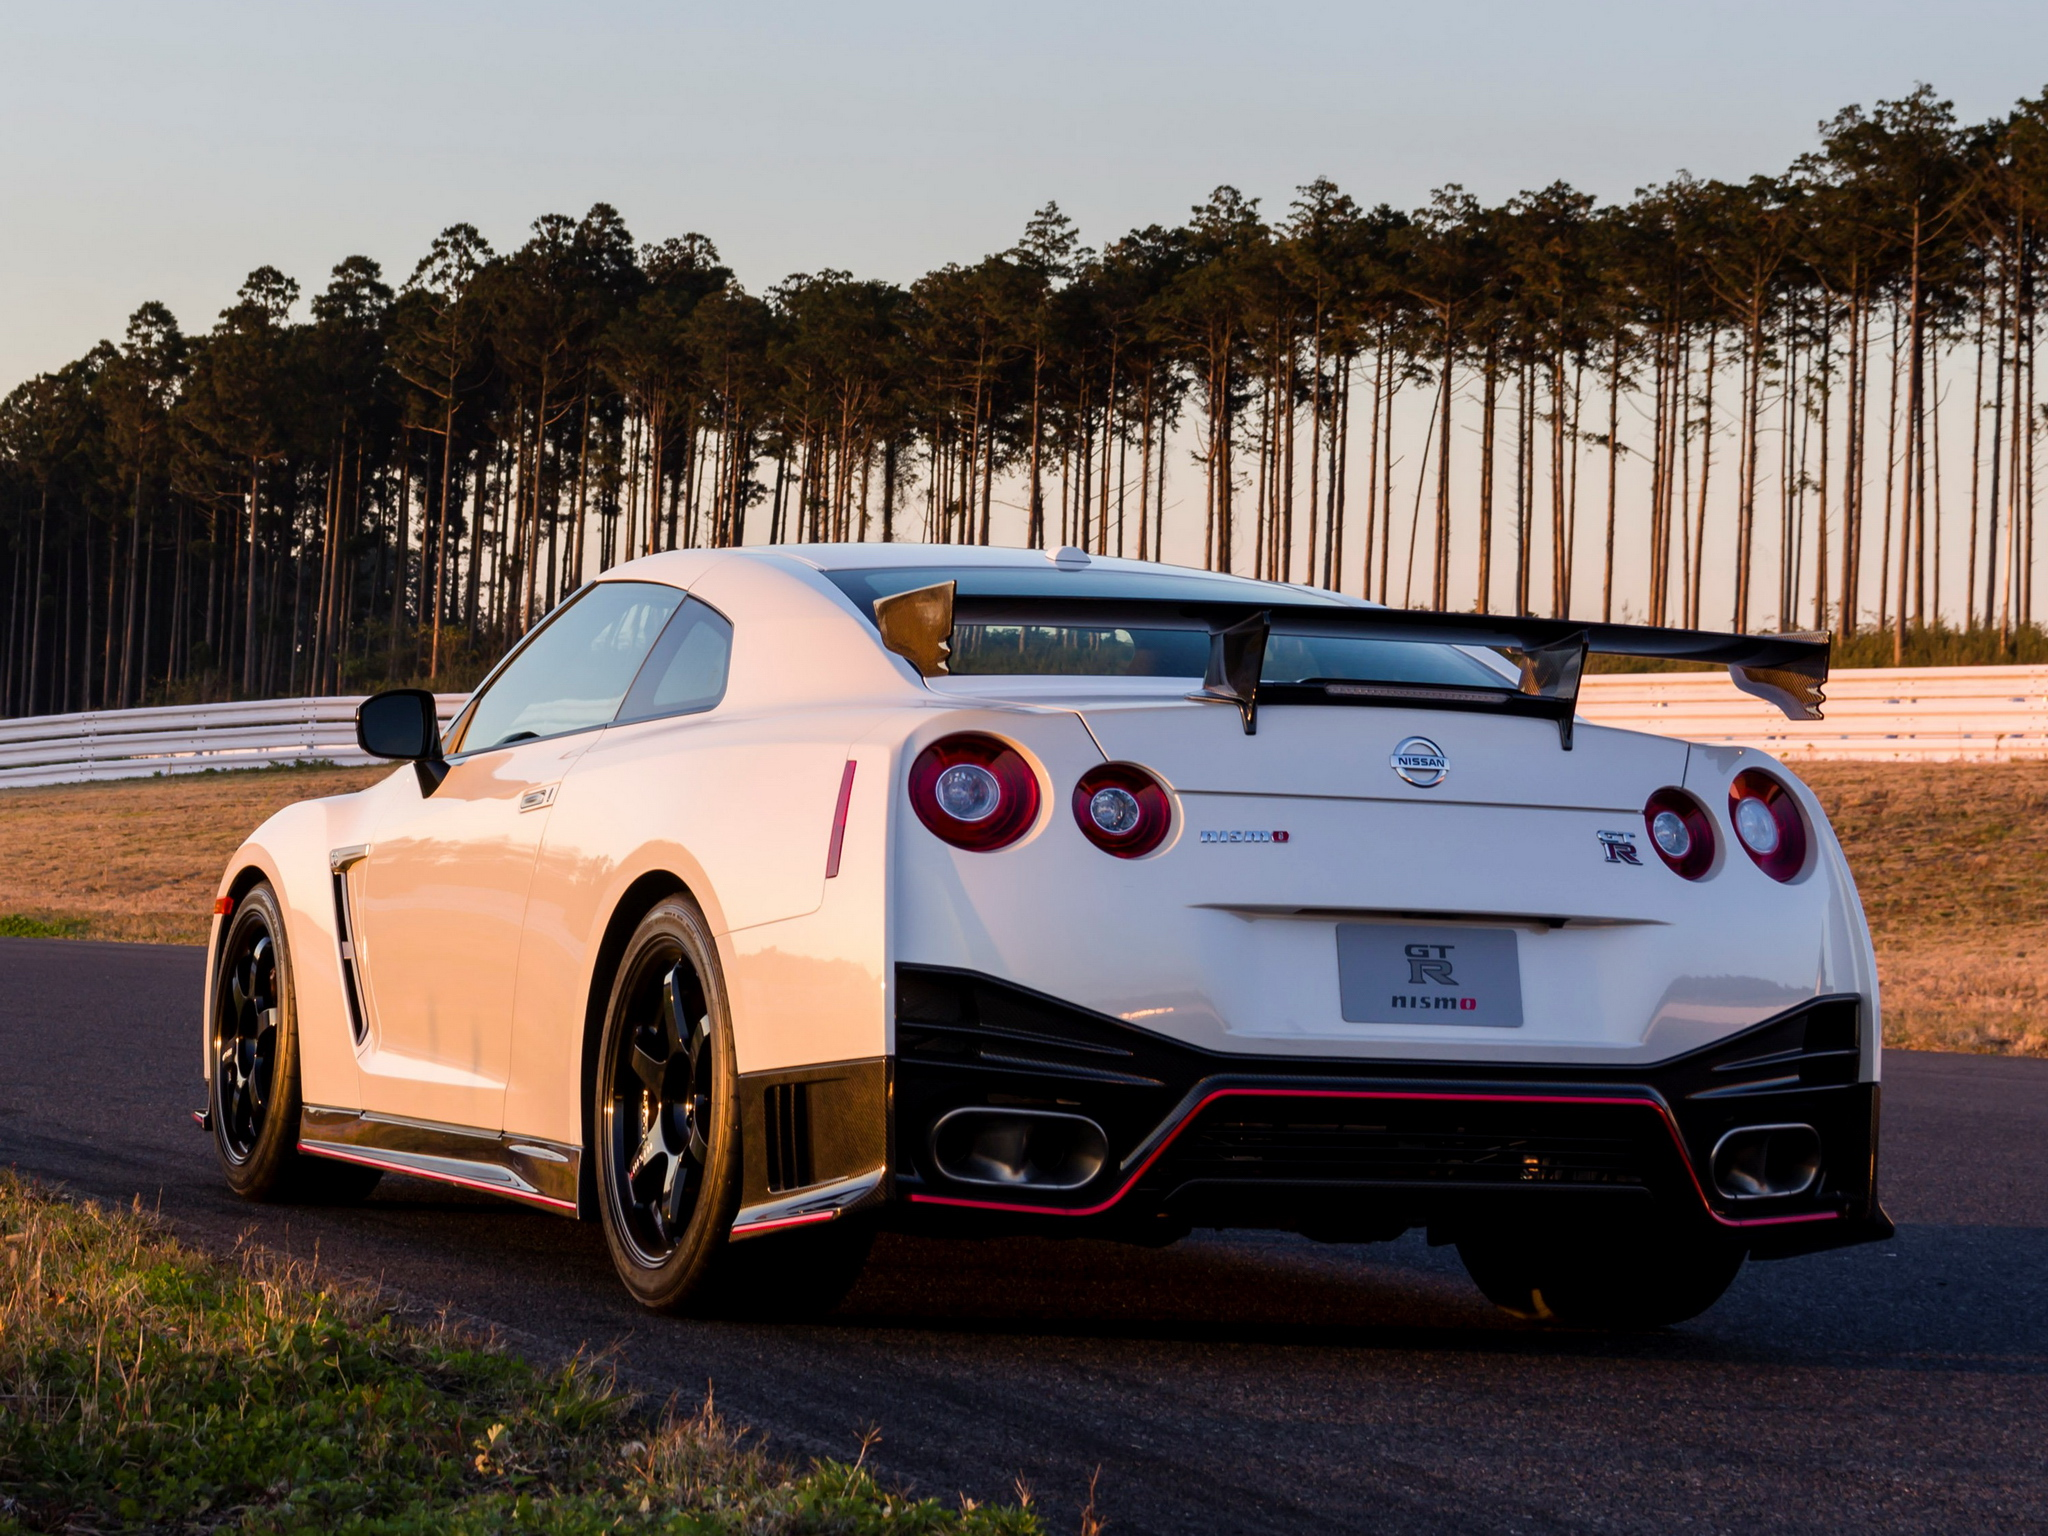 2014 nismo nissan gt r r35 supercar f wallpaper 2048x1536 207119 wallpaperup. Black Bedroom Furniture Sets. Home Design Ideas